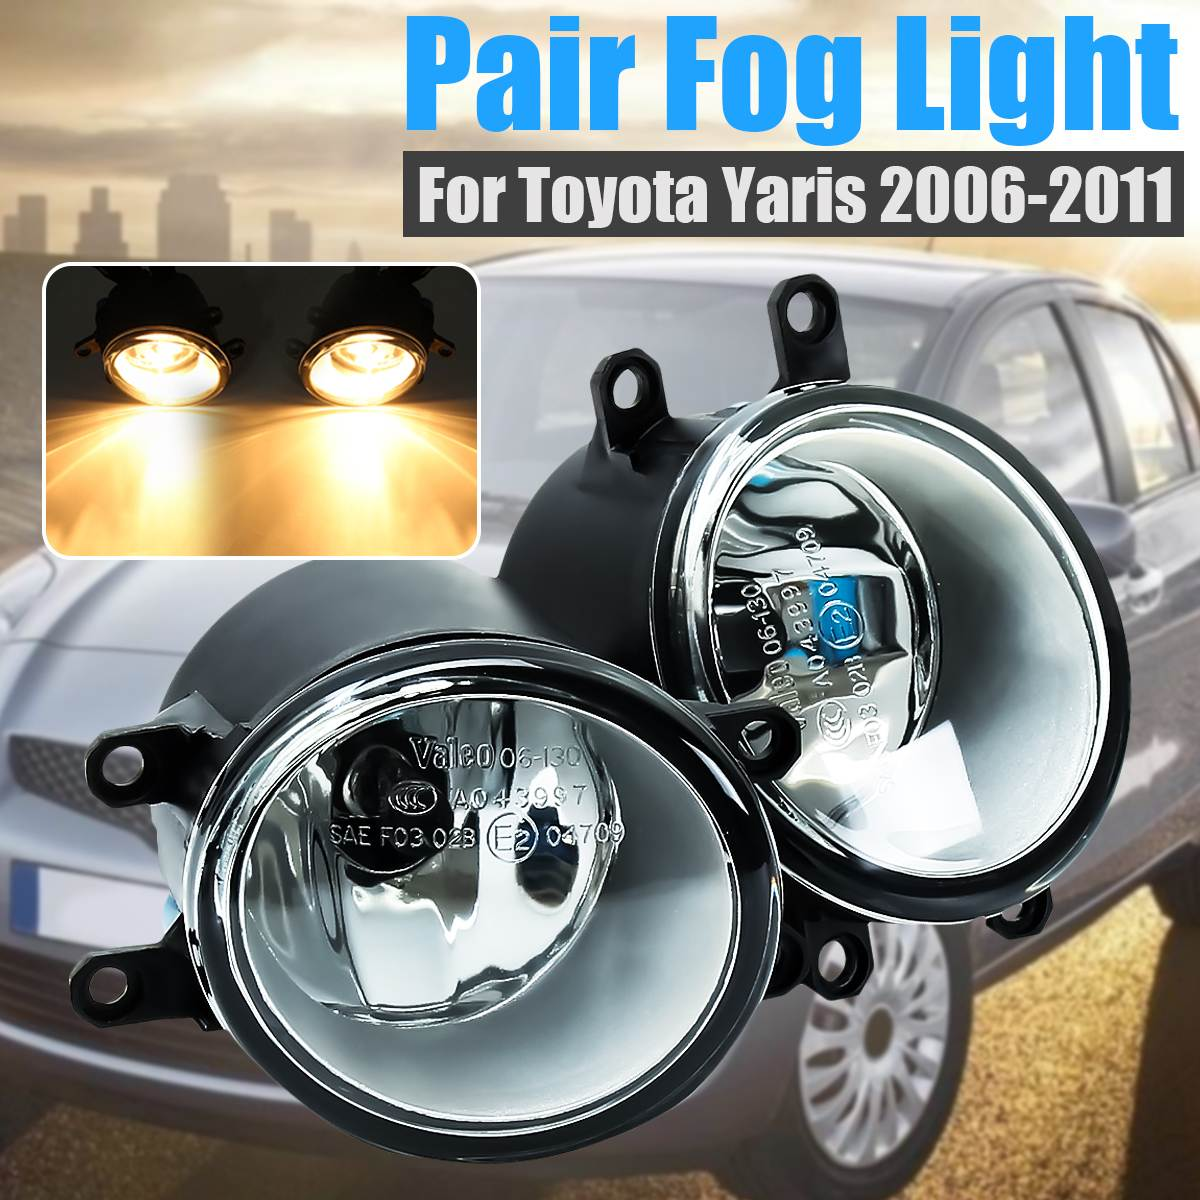 2Pcs Left+Right Car Front Clear Fog Light W/ Switch Harness Cover For Toyota Yaris Sedan 4-Door 2006 2007 2008 2009 2010 2011 2 pcs set car styling front bumper light fog lamps for toyota venza 2009 10 11 12 13 14 81210 06052 left right